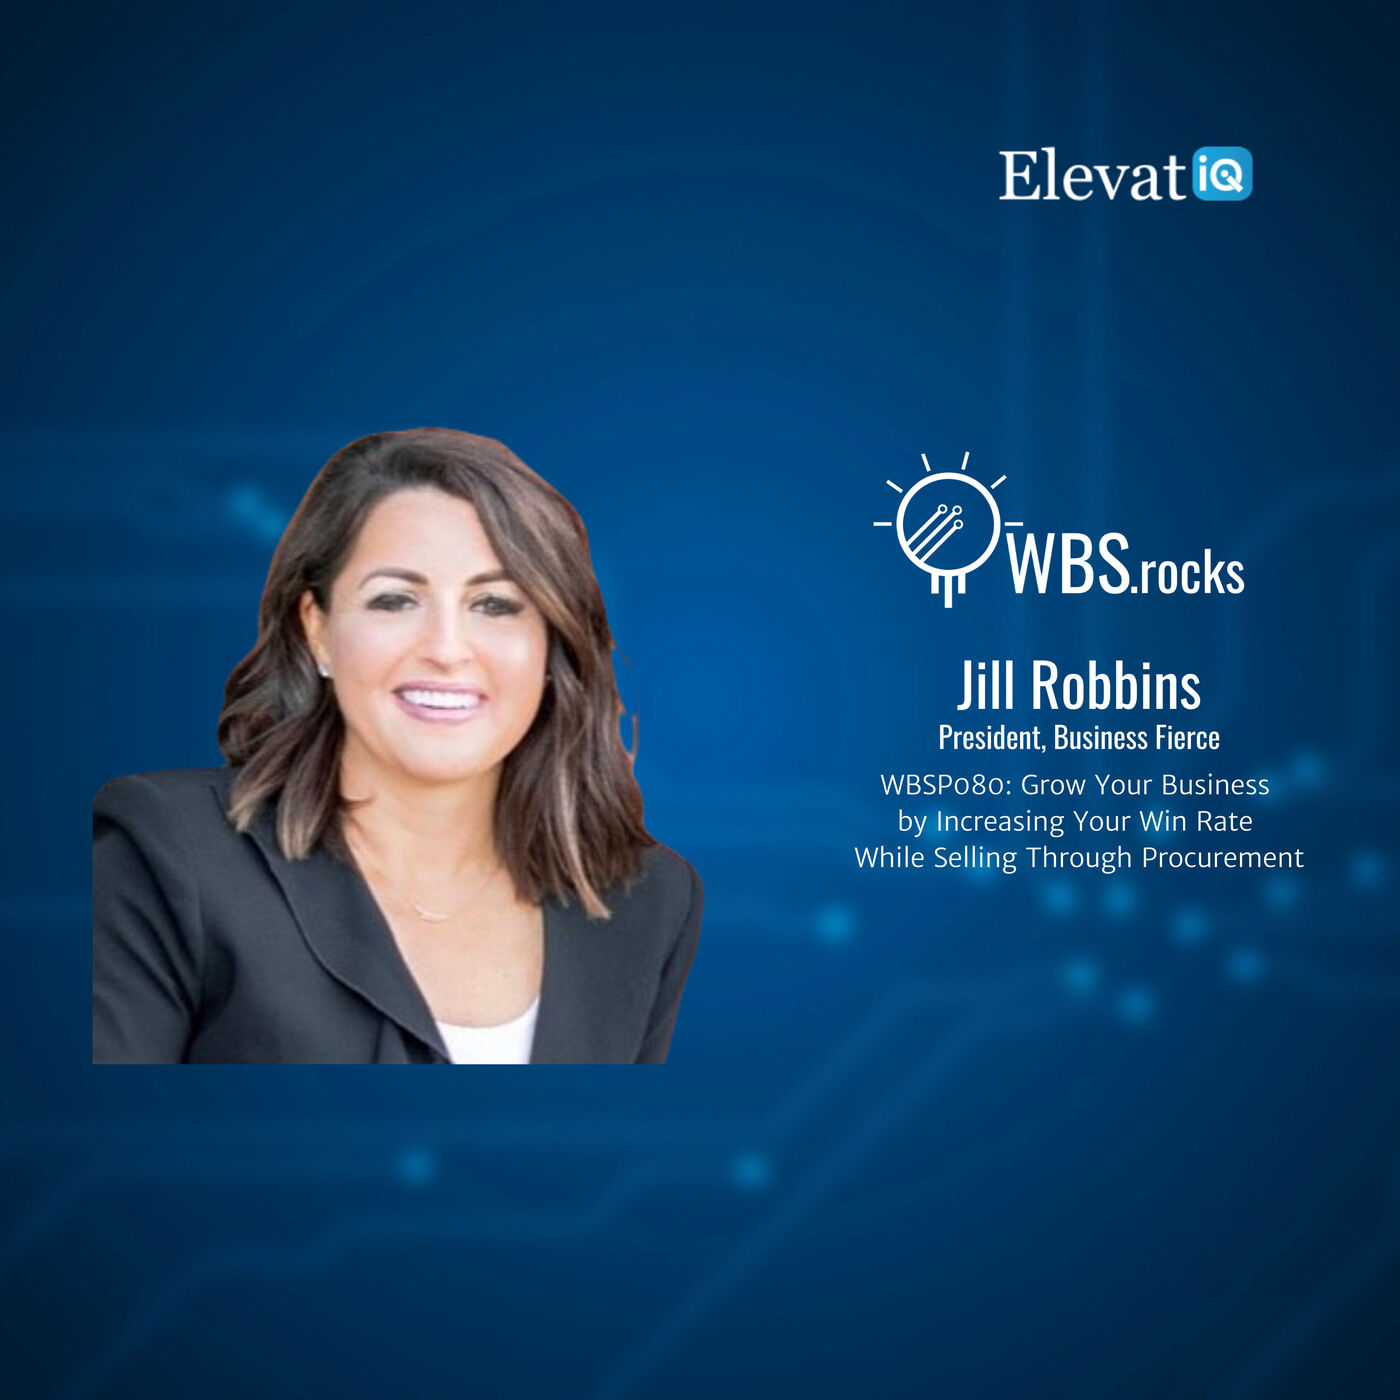 WBSP080: Grow Your Business by Increasing Your Win Rate While Selling Through Procurement w/ Jill Robbins